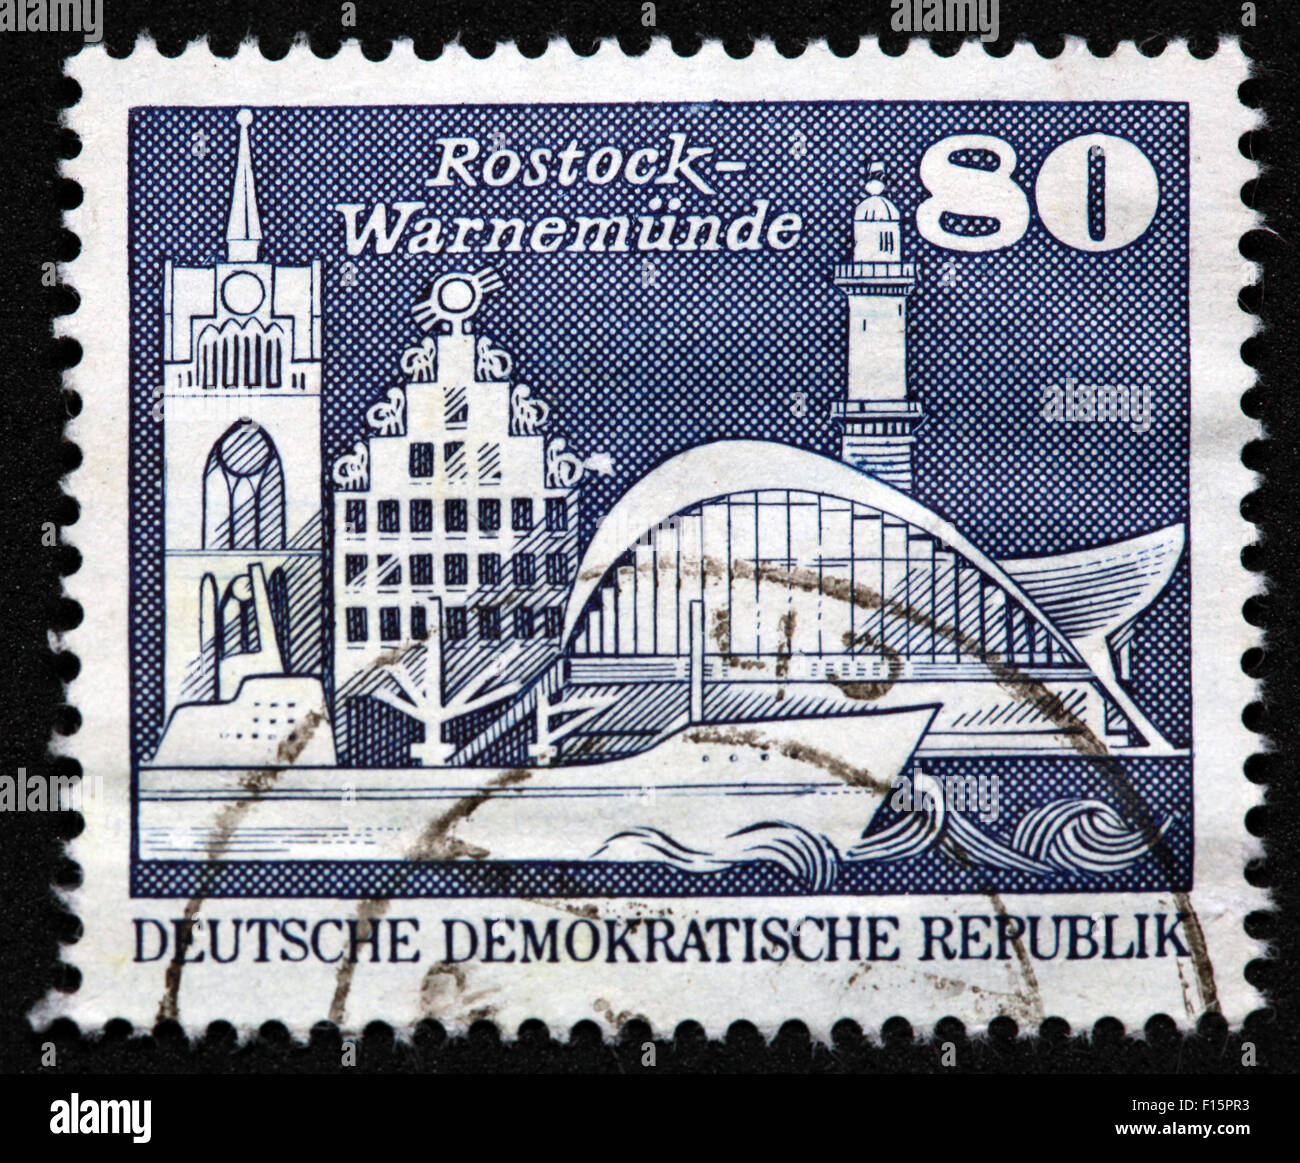 Deutsche Demokratische Republik DDR Rostock-Warnemunde 80 Stamp - Stock Image